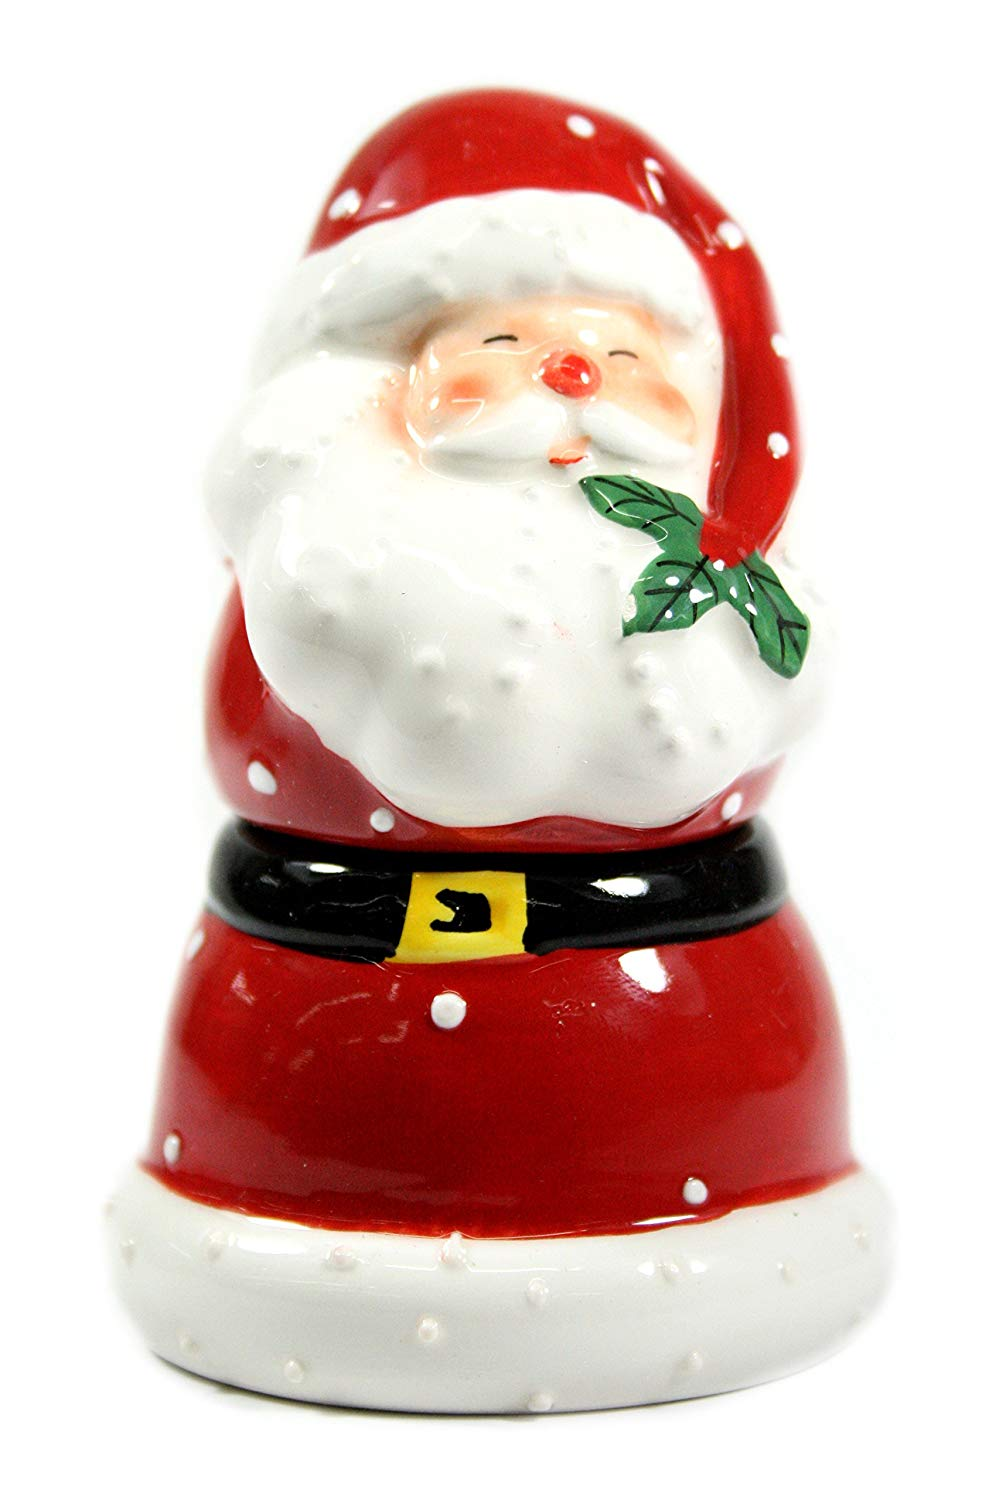 "Santa Claus Salt and Pepper Shaker 4.5"" Tall Gift"